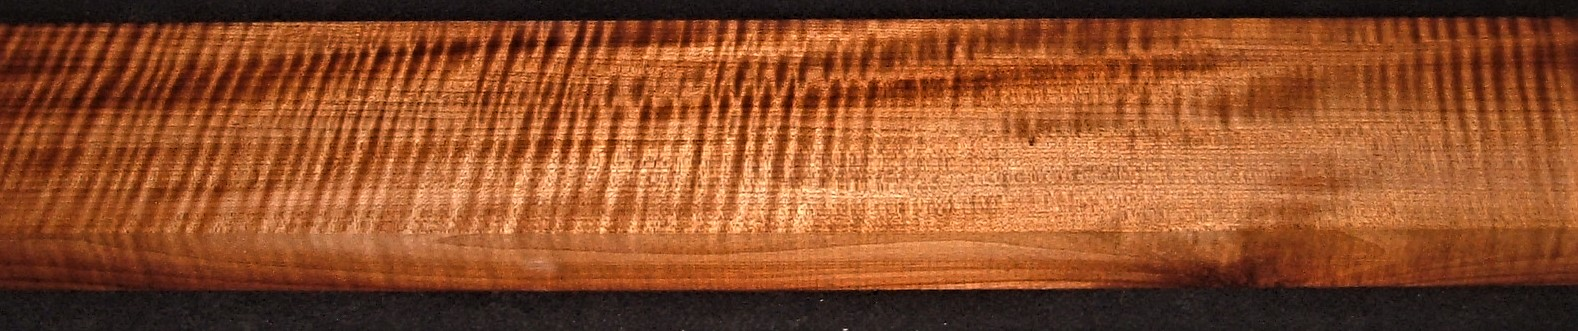 QRM2010-310JK, 1-5/16x4-3/4x45, Quartersawn Roasted Curly Maple